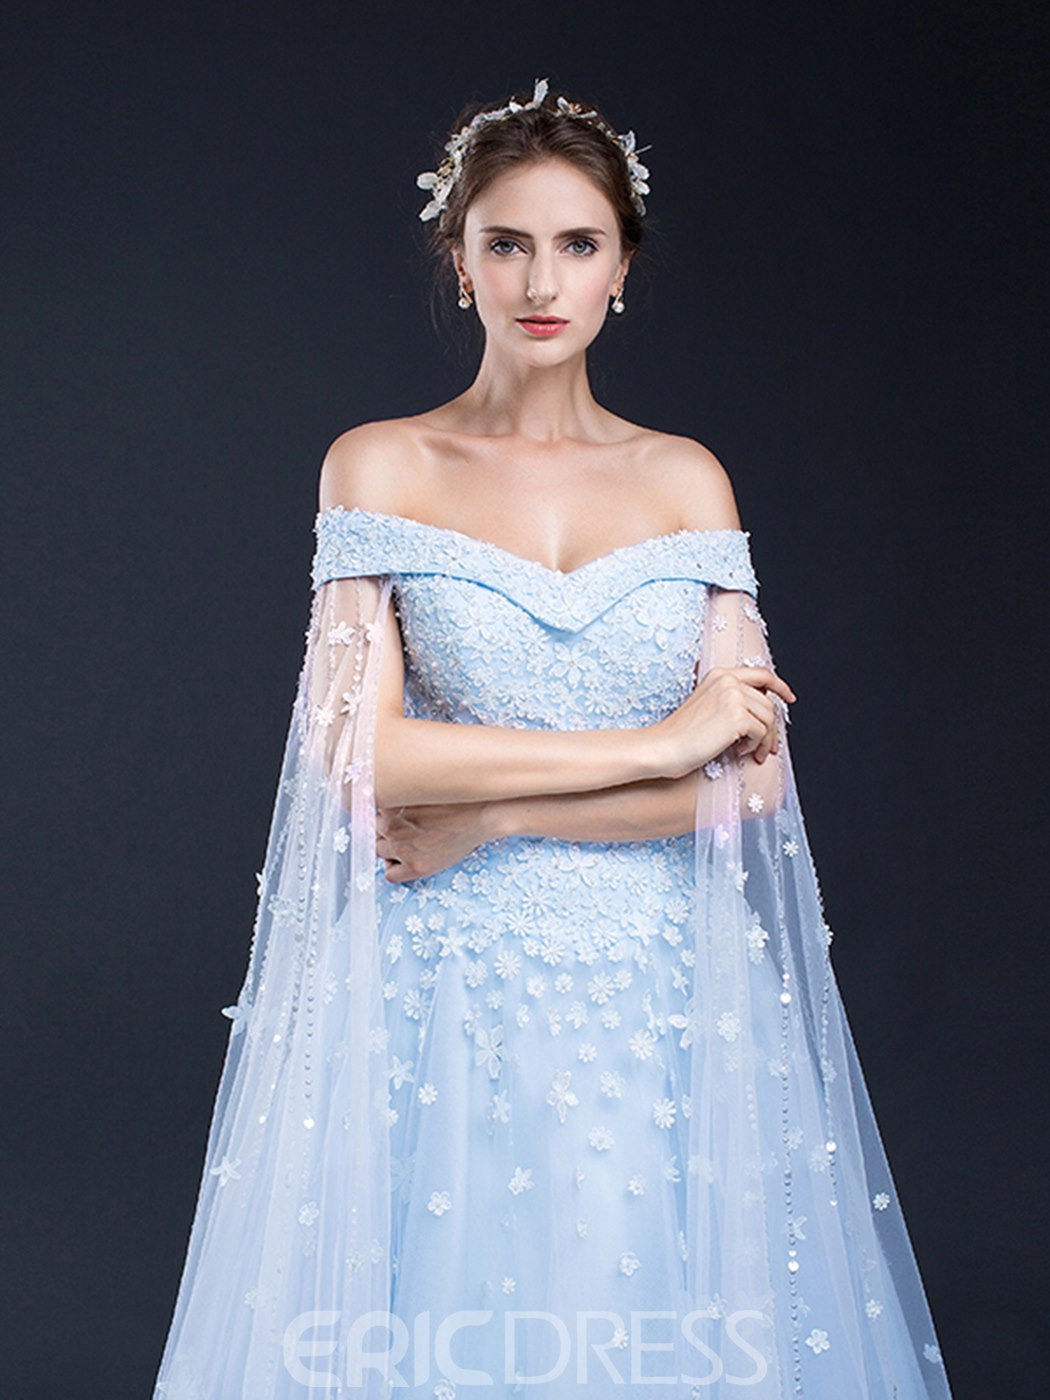 Ericdress Off The Shoulder Cap Sleeve Applique Evening Dress With Lace-Up Back